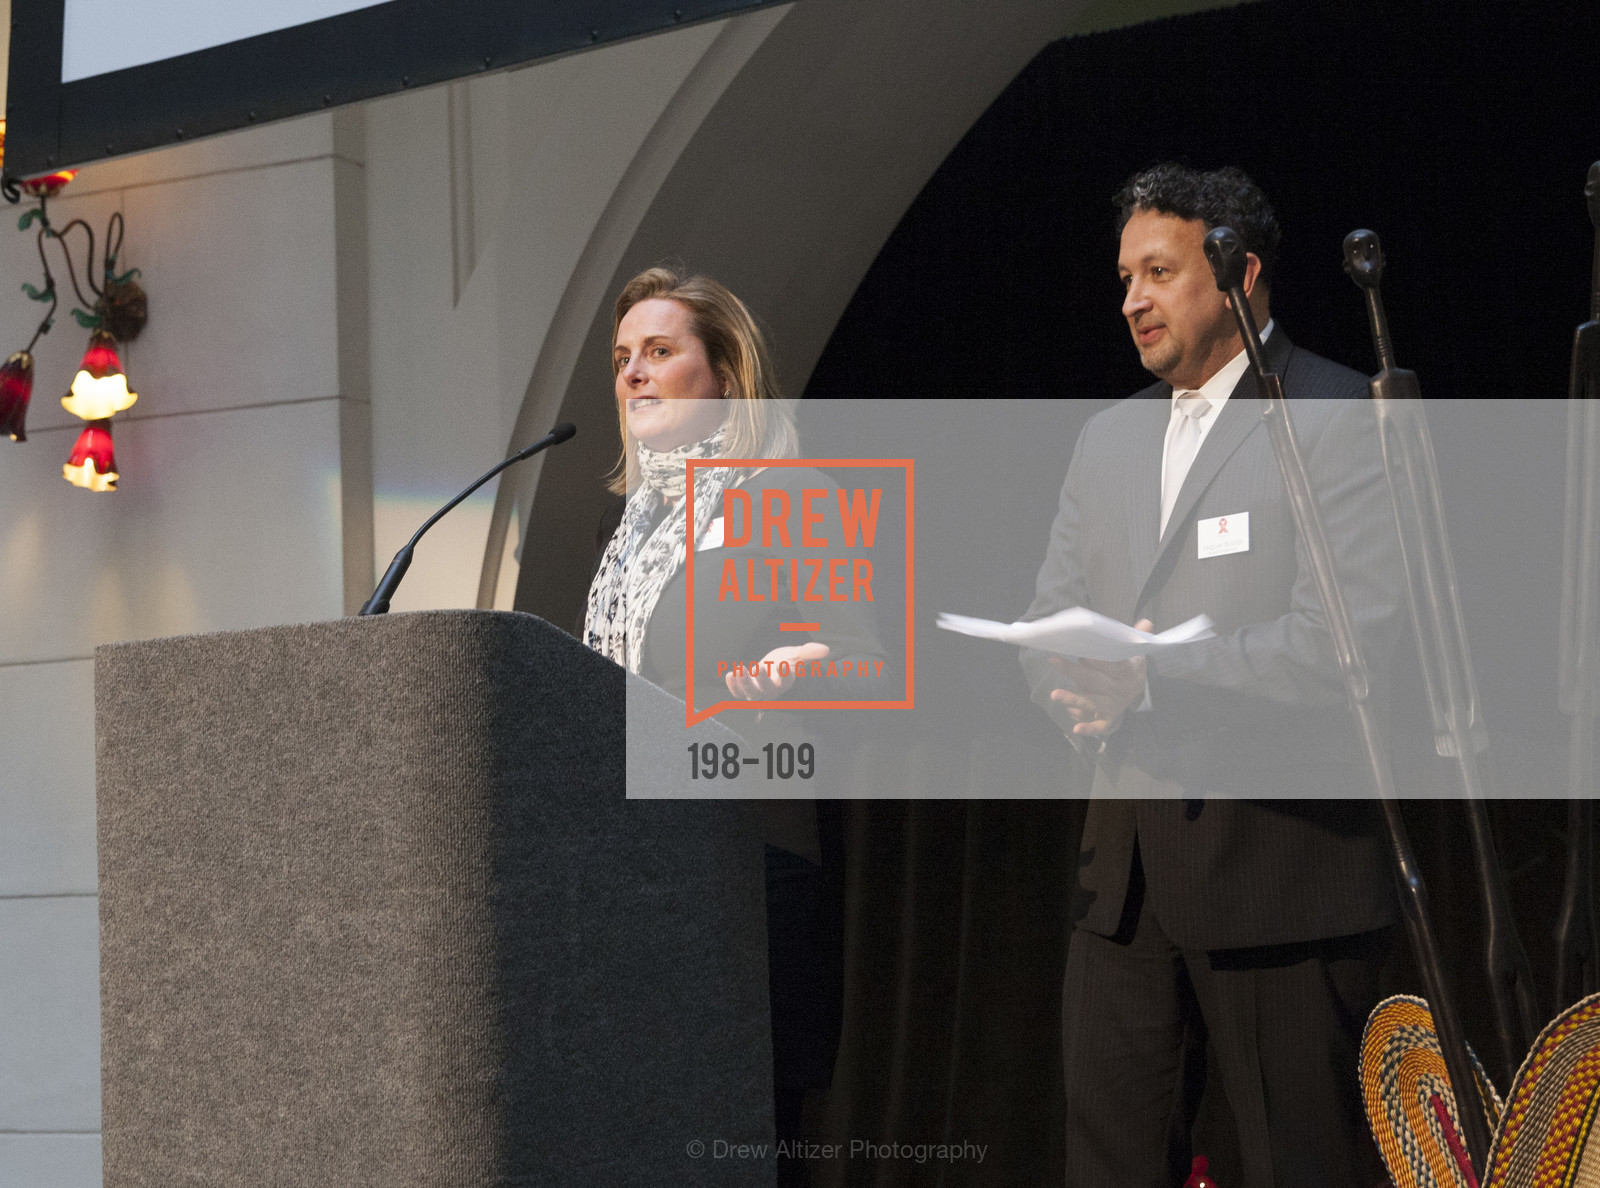 Kelly Thompson, Miguel Bustos, PANGAEA GLOBAL HEALTH Leadership Dinner at Rotunda in Oakland, The Rotunda. Oakland, May 11th, 2015,Drew Altizer, Drew Altizer Photography, full-service agency, private events, San Francisco photographer, photographer california